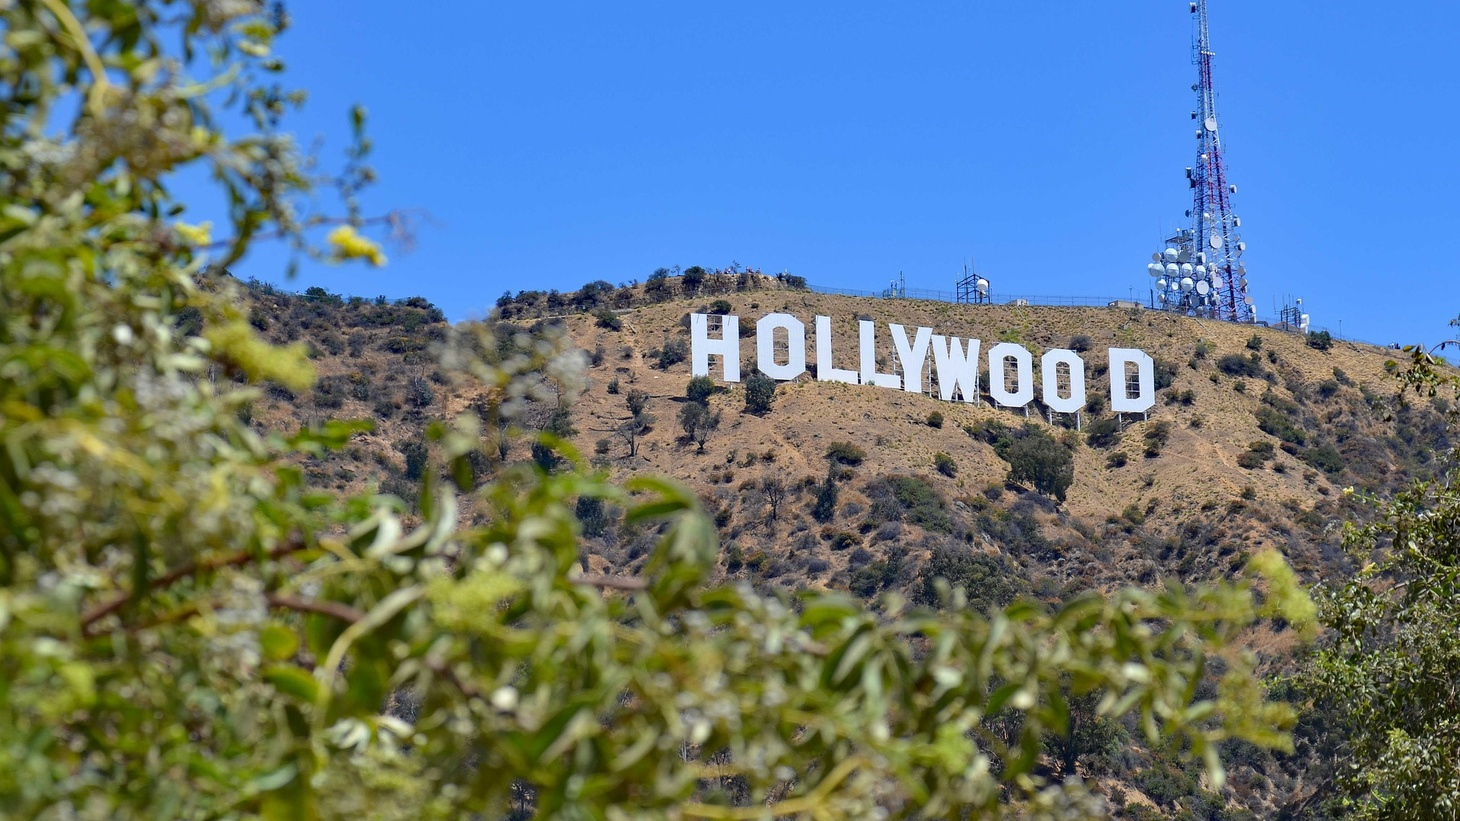 A new, yet-to-be-named Hollywood management company has been quietly hiring agents from Creative Artists Agency, United Talent Agency, and Endeavor.